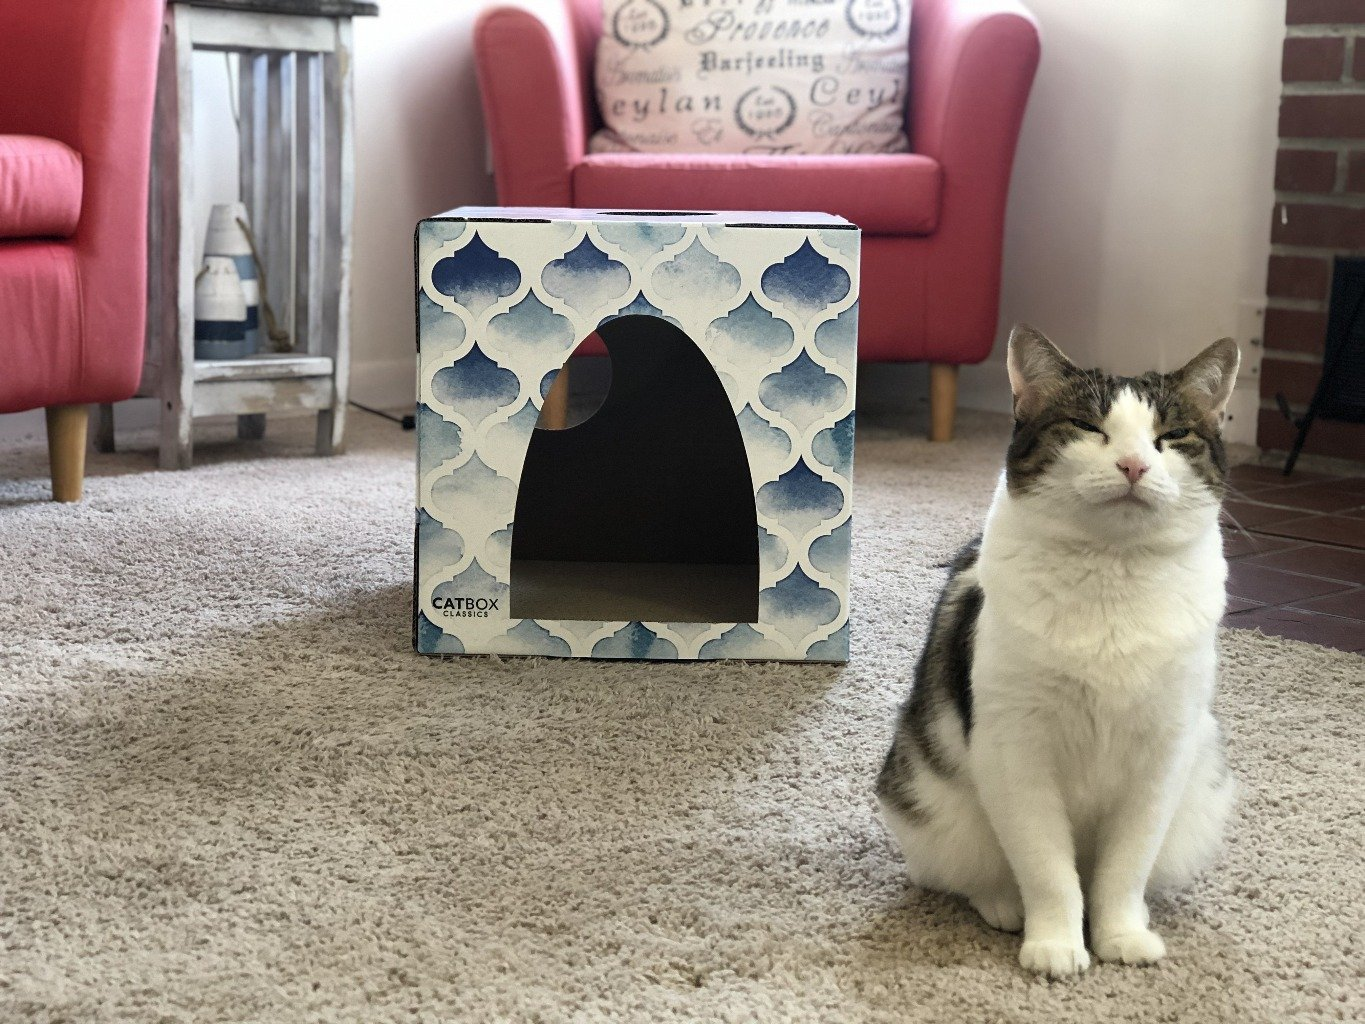 Purrfect Oasis Cat House with Scratcher - Cat Box Classics